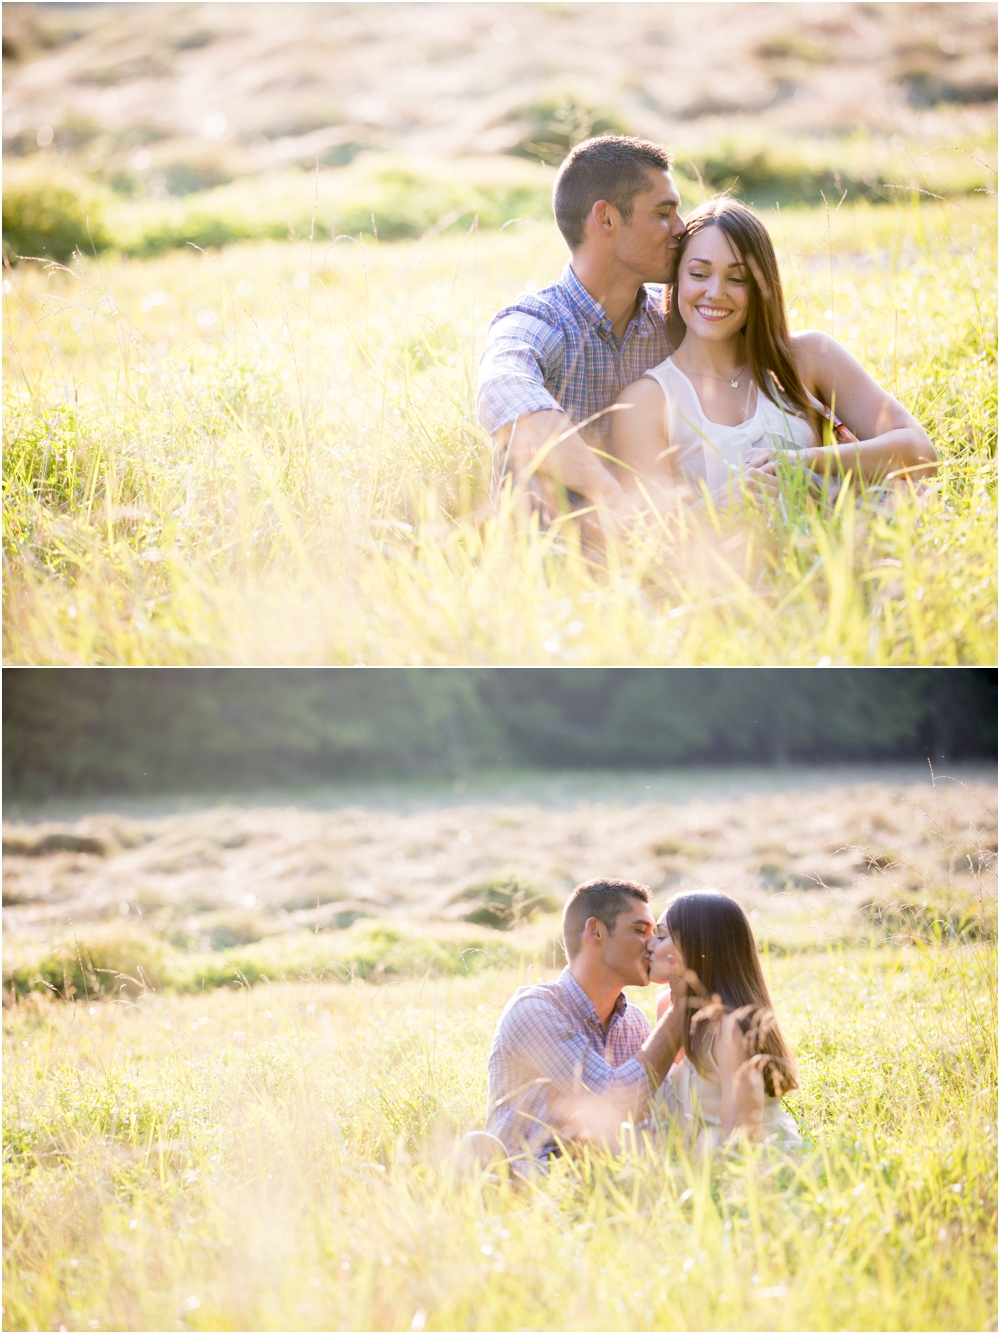 Erin & Collin {engaged} | Jerusalem Mill Village Engagement Session | Jerusalem, Maryland | Living Radiant Photography | Field Engagement